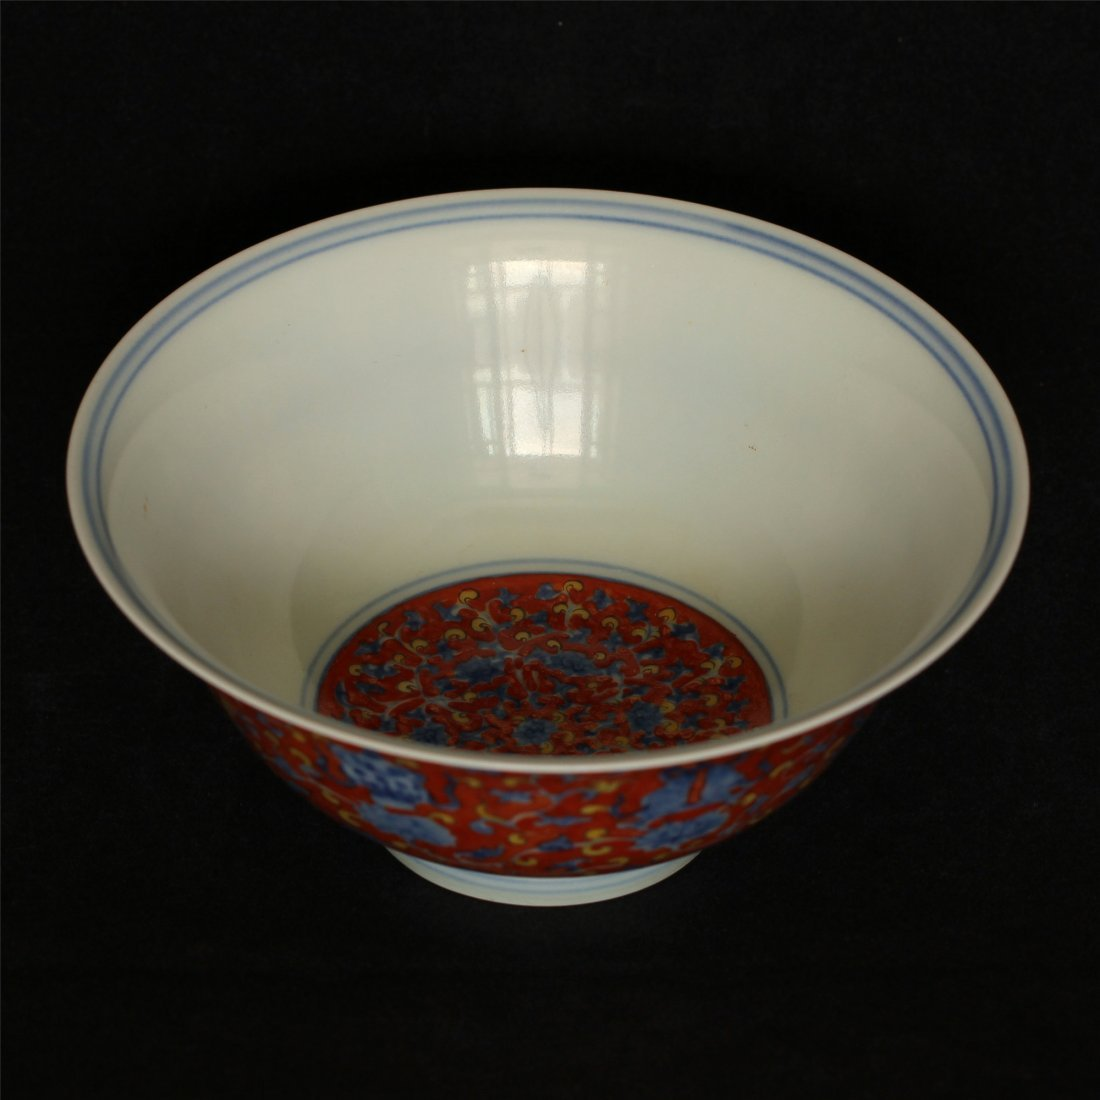 Blue and white & red color porcelain bowl of Ming